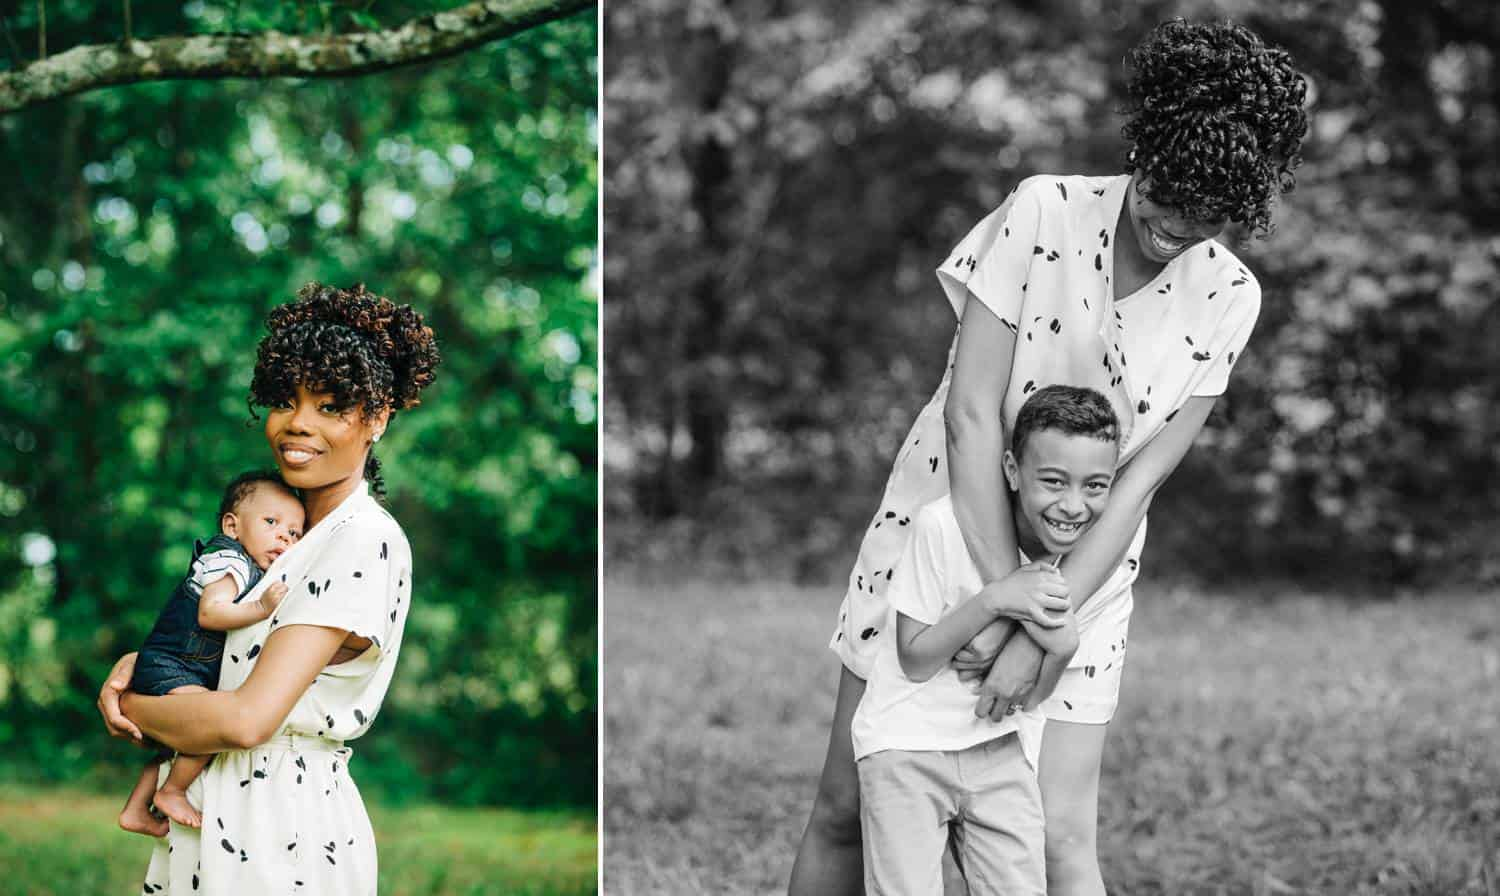 In photo one, a Black woman wearing a white romper holds her newborn baby close as they pose, smiling, for a colorful outdoor photo. In photo two, the same mother holds her older son in front of her with her arms wrapped around him as they both laugh.